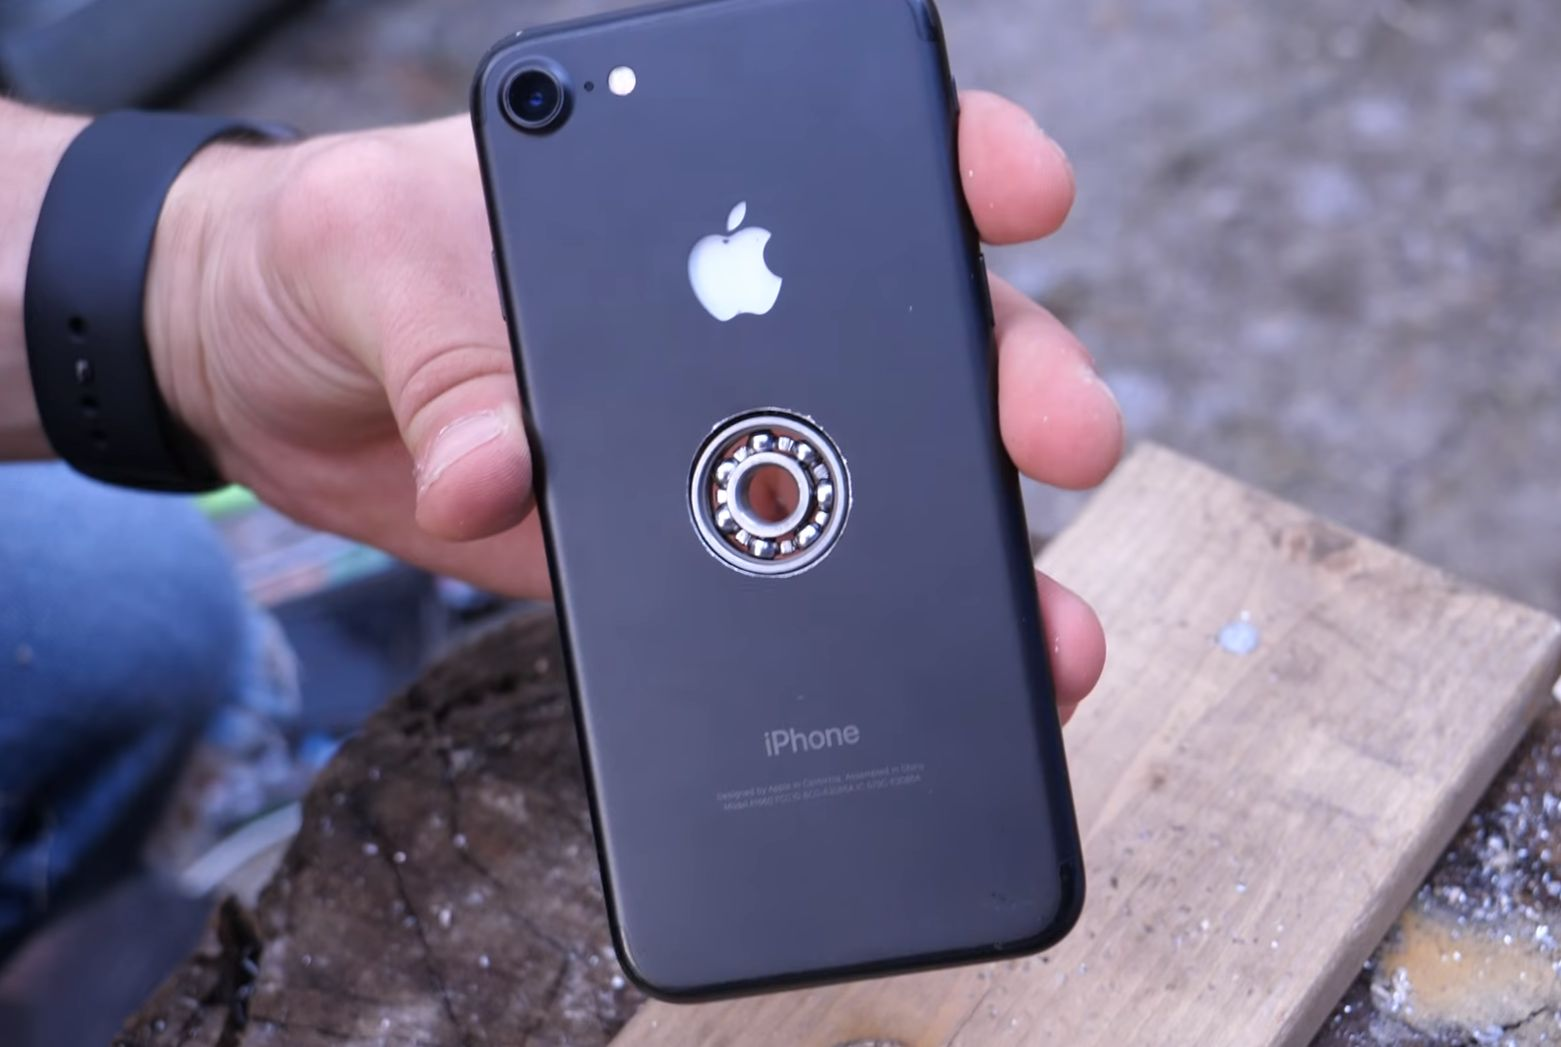 iphone-fidget-spinner